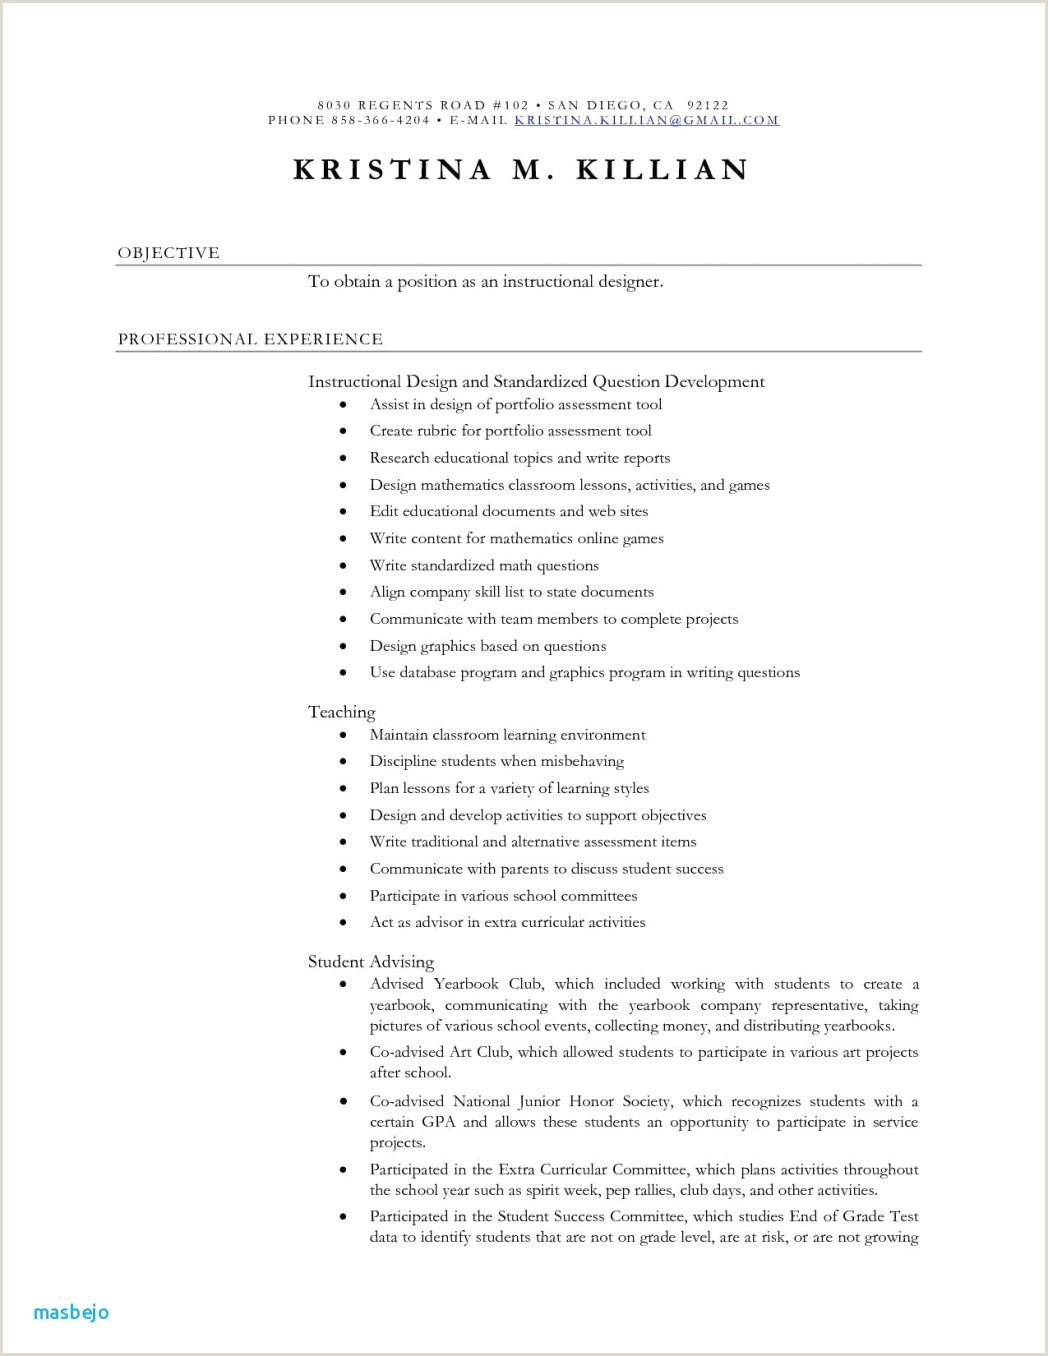 Sample Resume for Teachers without Experience Inspirational